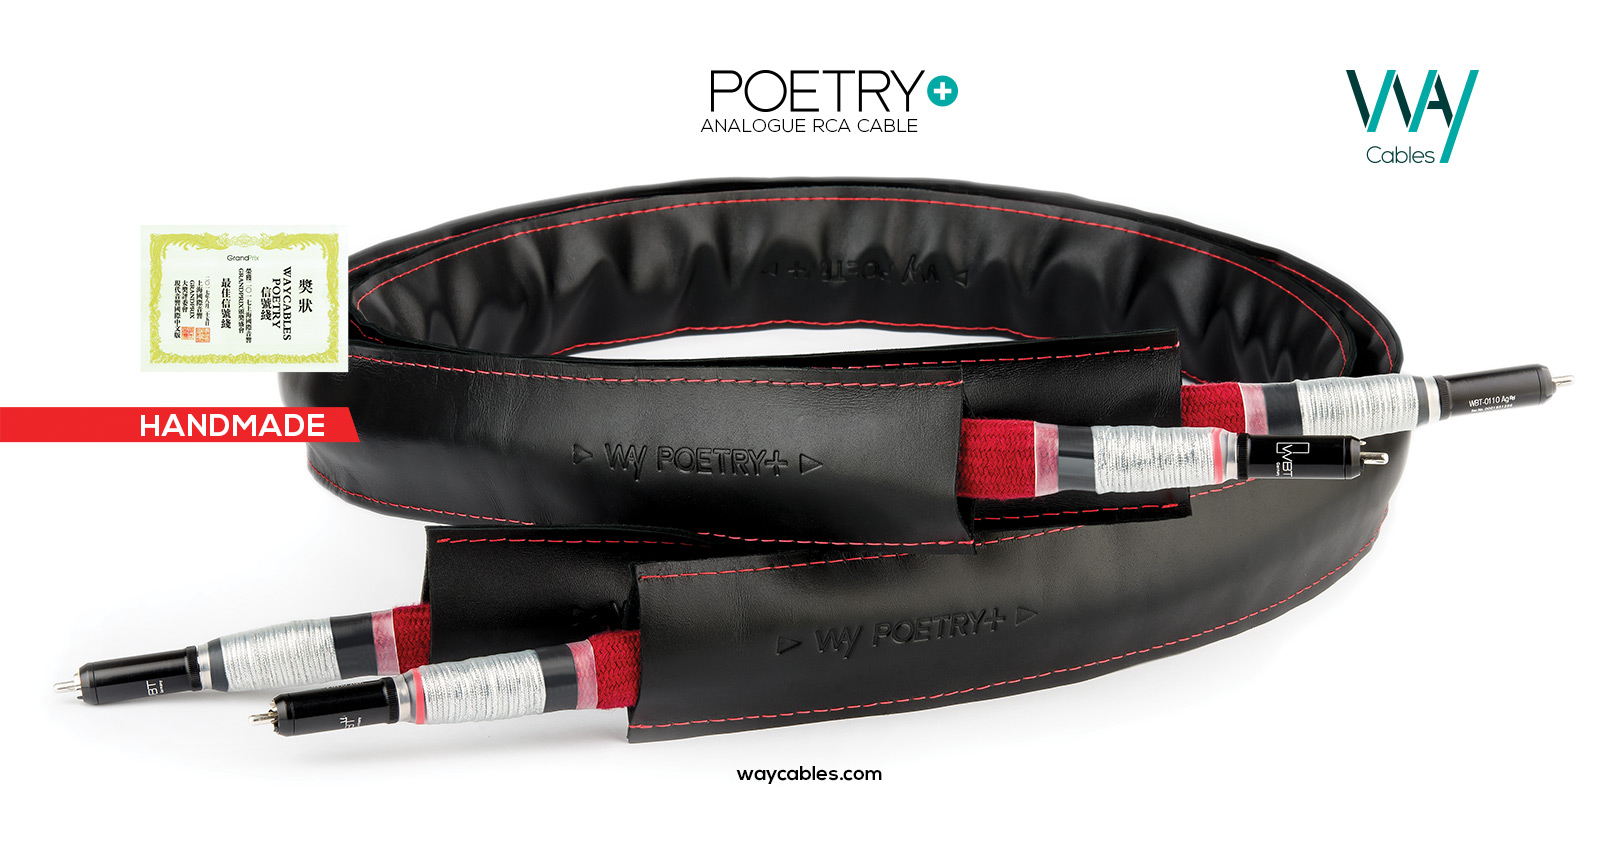 WayCables_Inter_Poetry 2